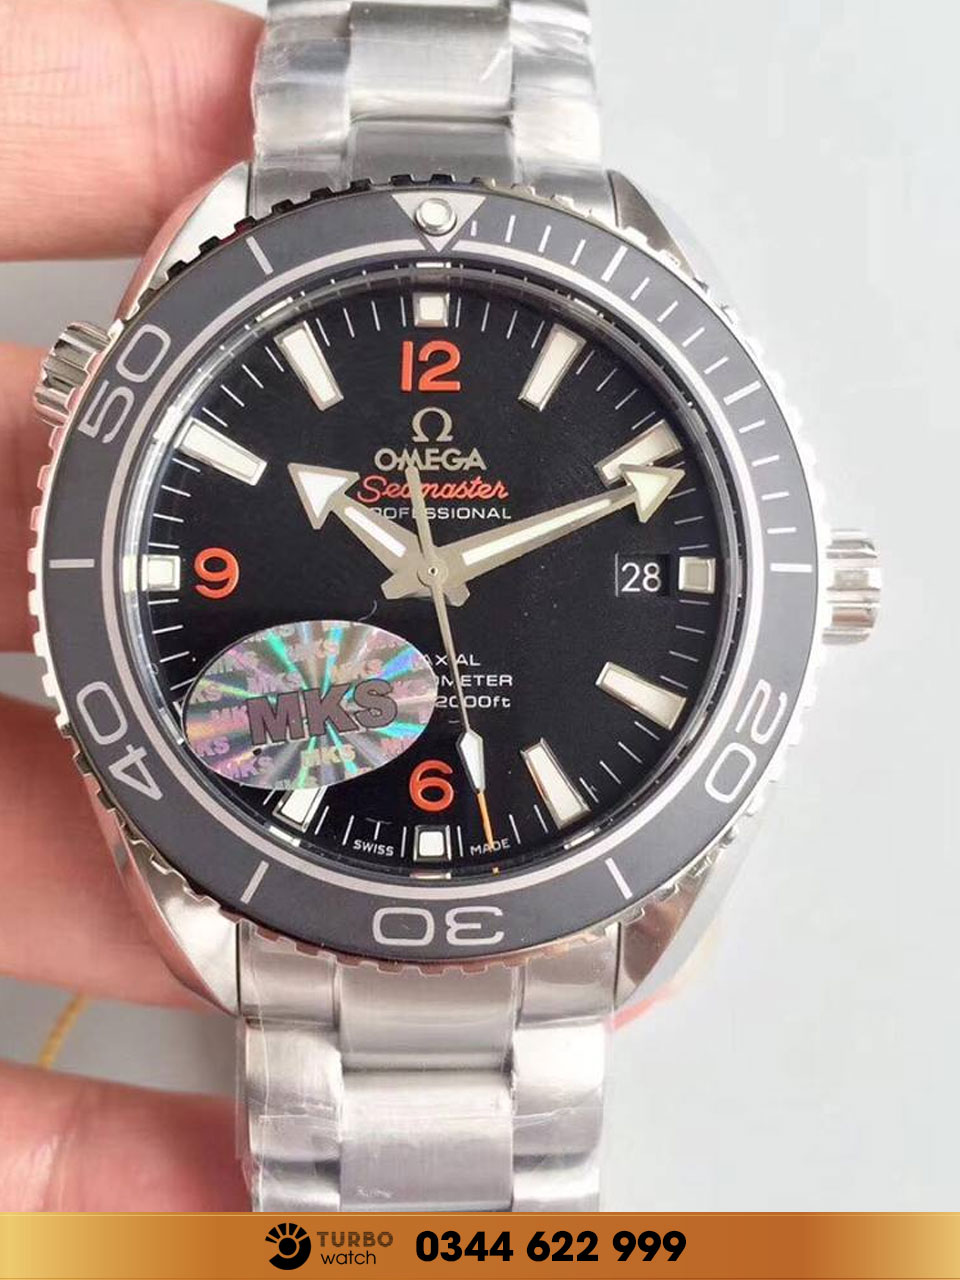 Omegaseamaster professional r1 fake 1-1 cao cấp